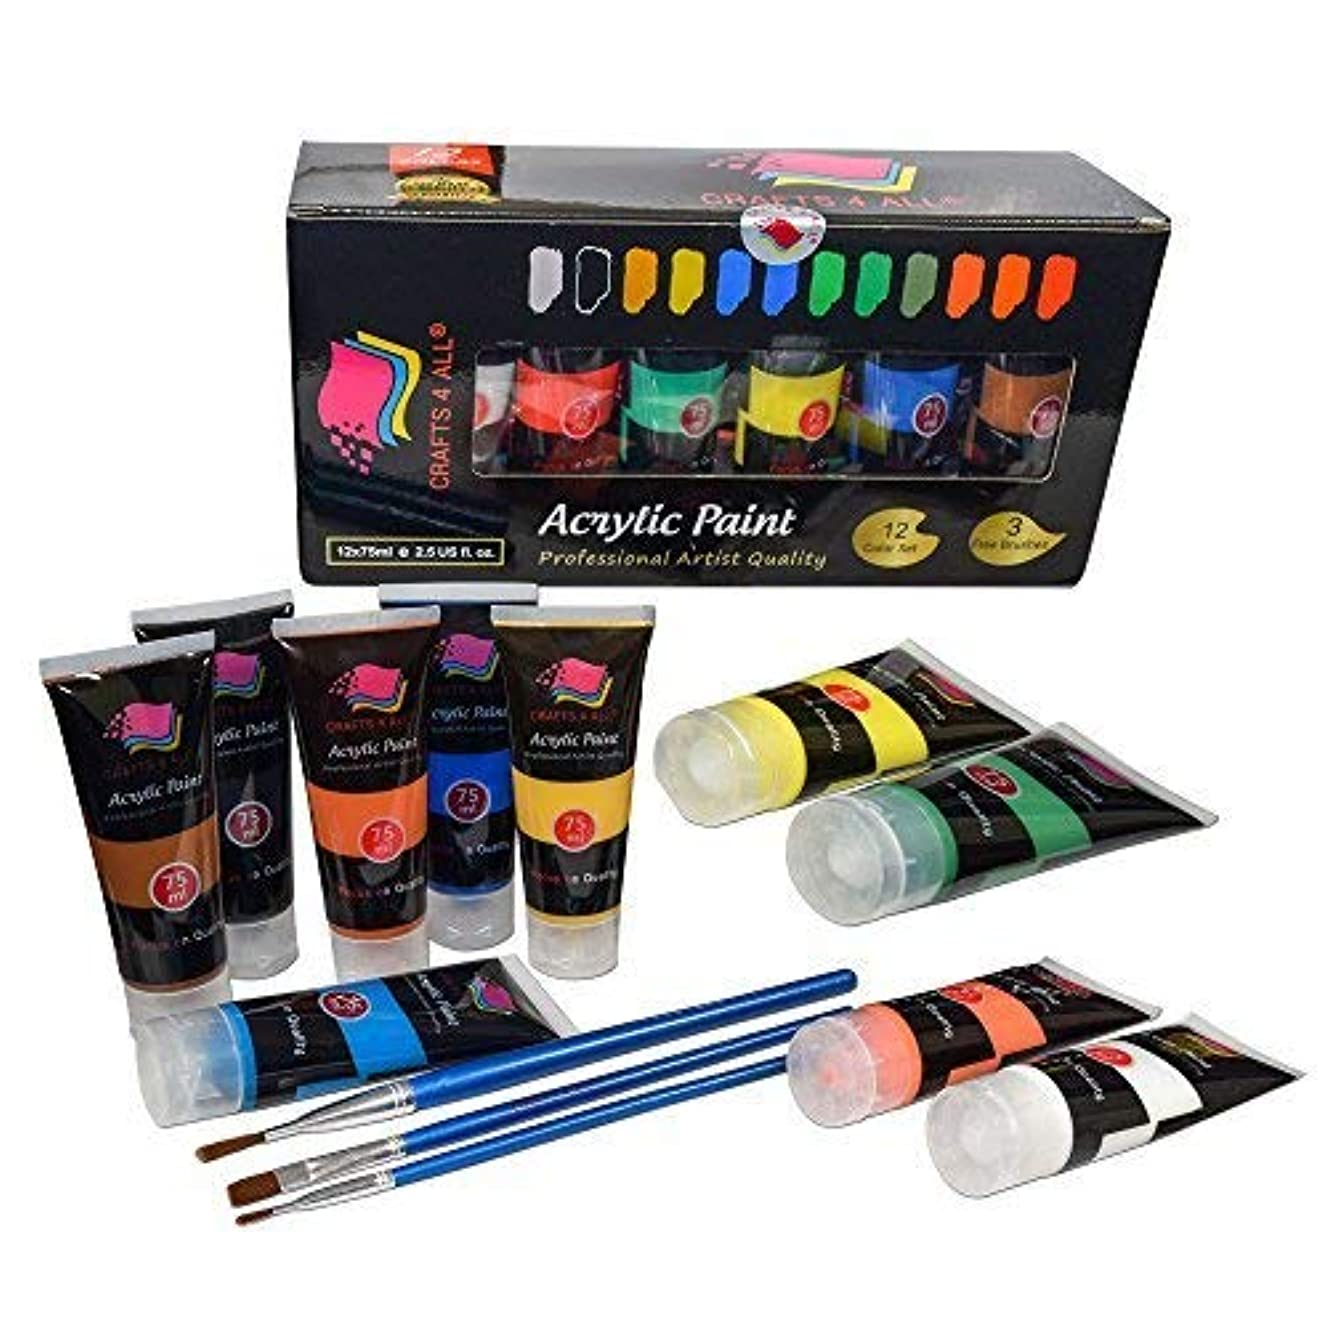 Crafts 4 ALL Acrylic Paints Set Studio Large 75m ml(2.64 oz) Paint Tubes Professional Grade Painting Kit for Canvas, Wood, Clay, Fabric, Nail Art, Ceramic